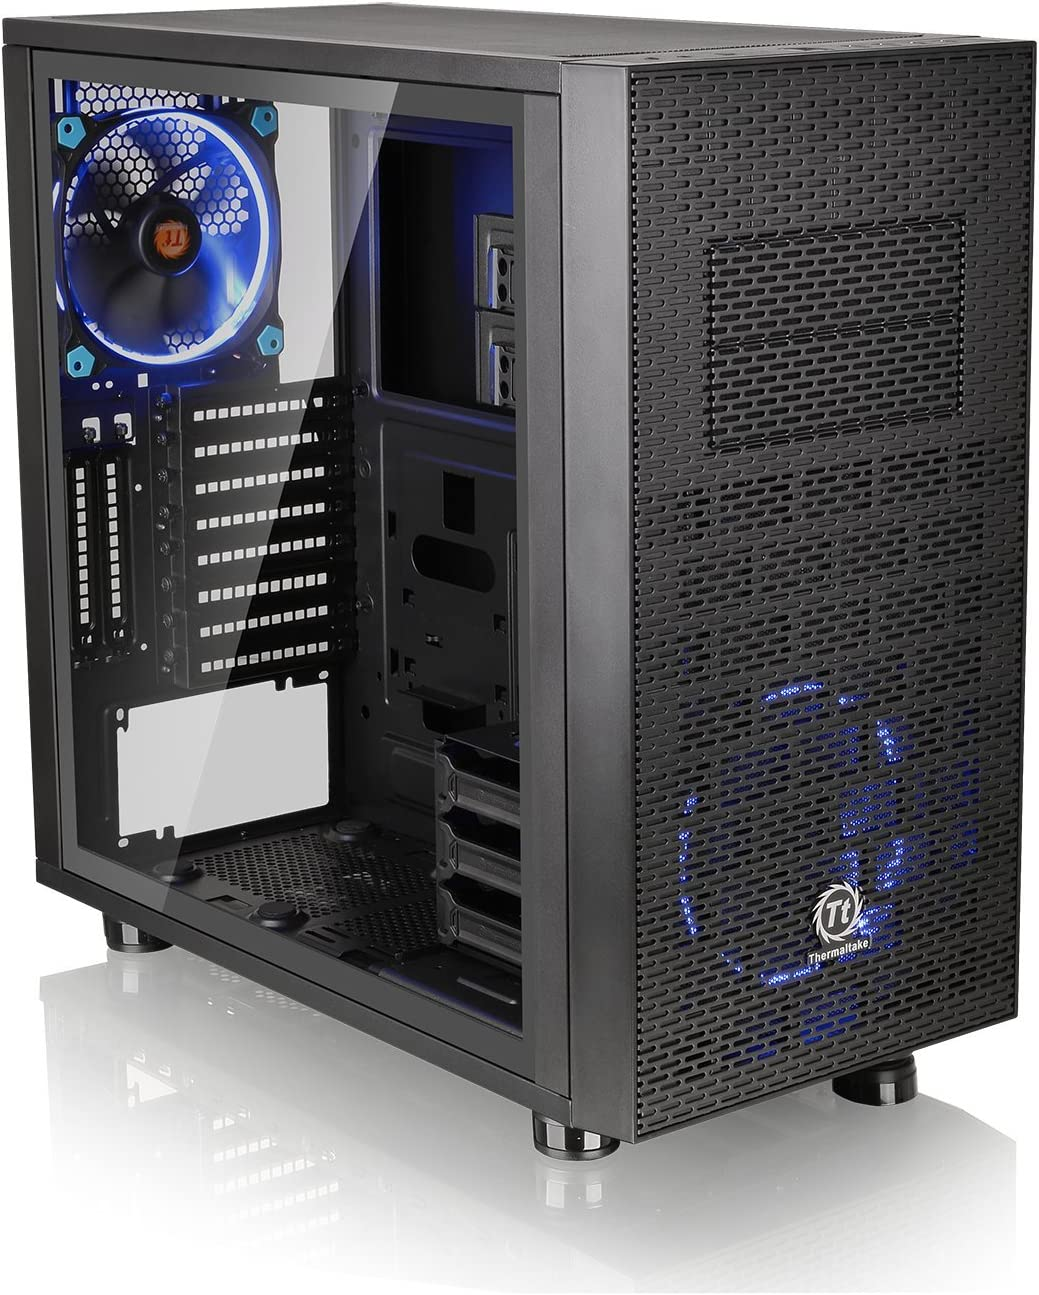 Thermaltake Core X31 Tempered Glass Edition SPCC ATX Mid Tower Tt LCS Certified Gaming Computer Case CA-1E9-00M1WN-03